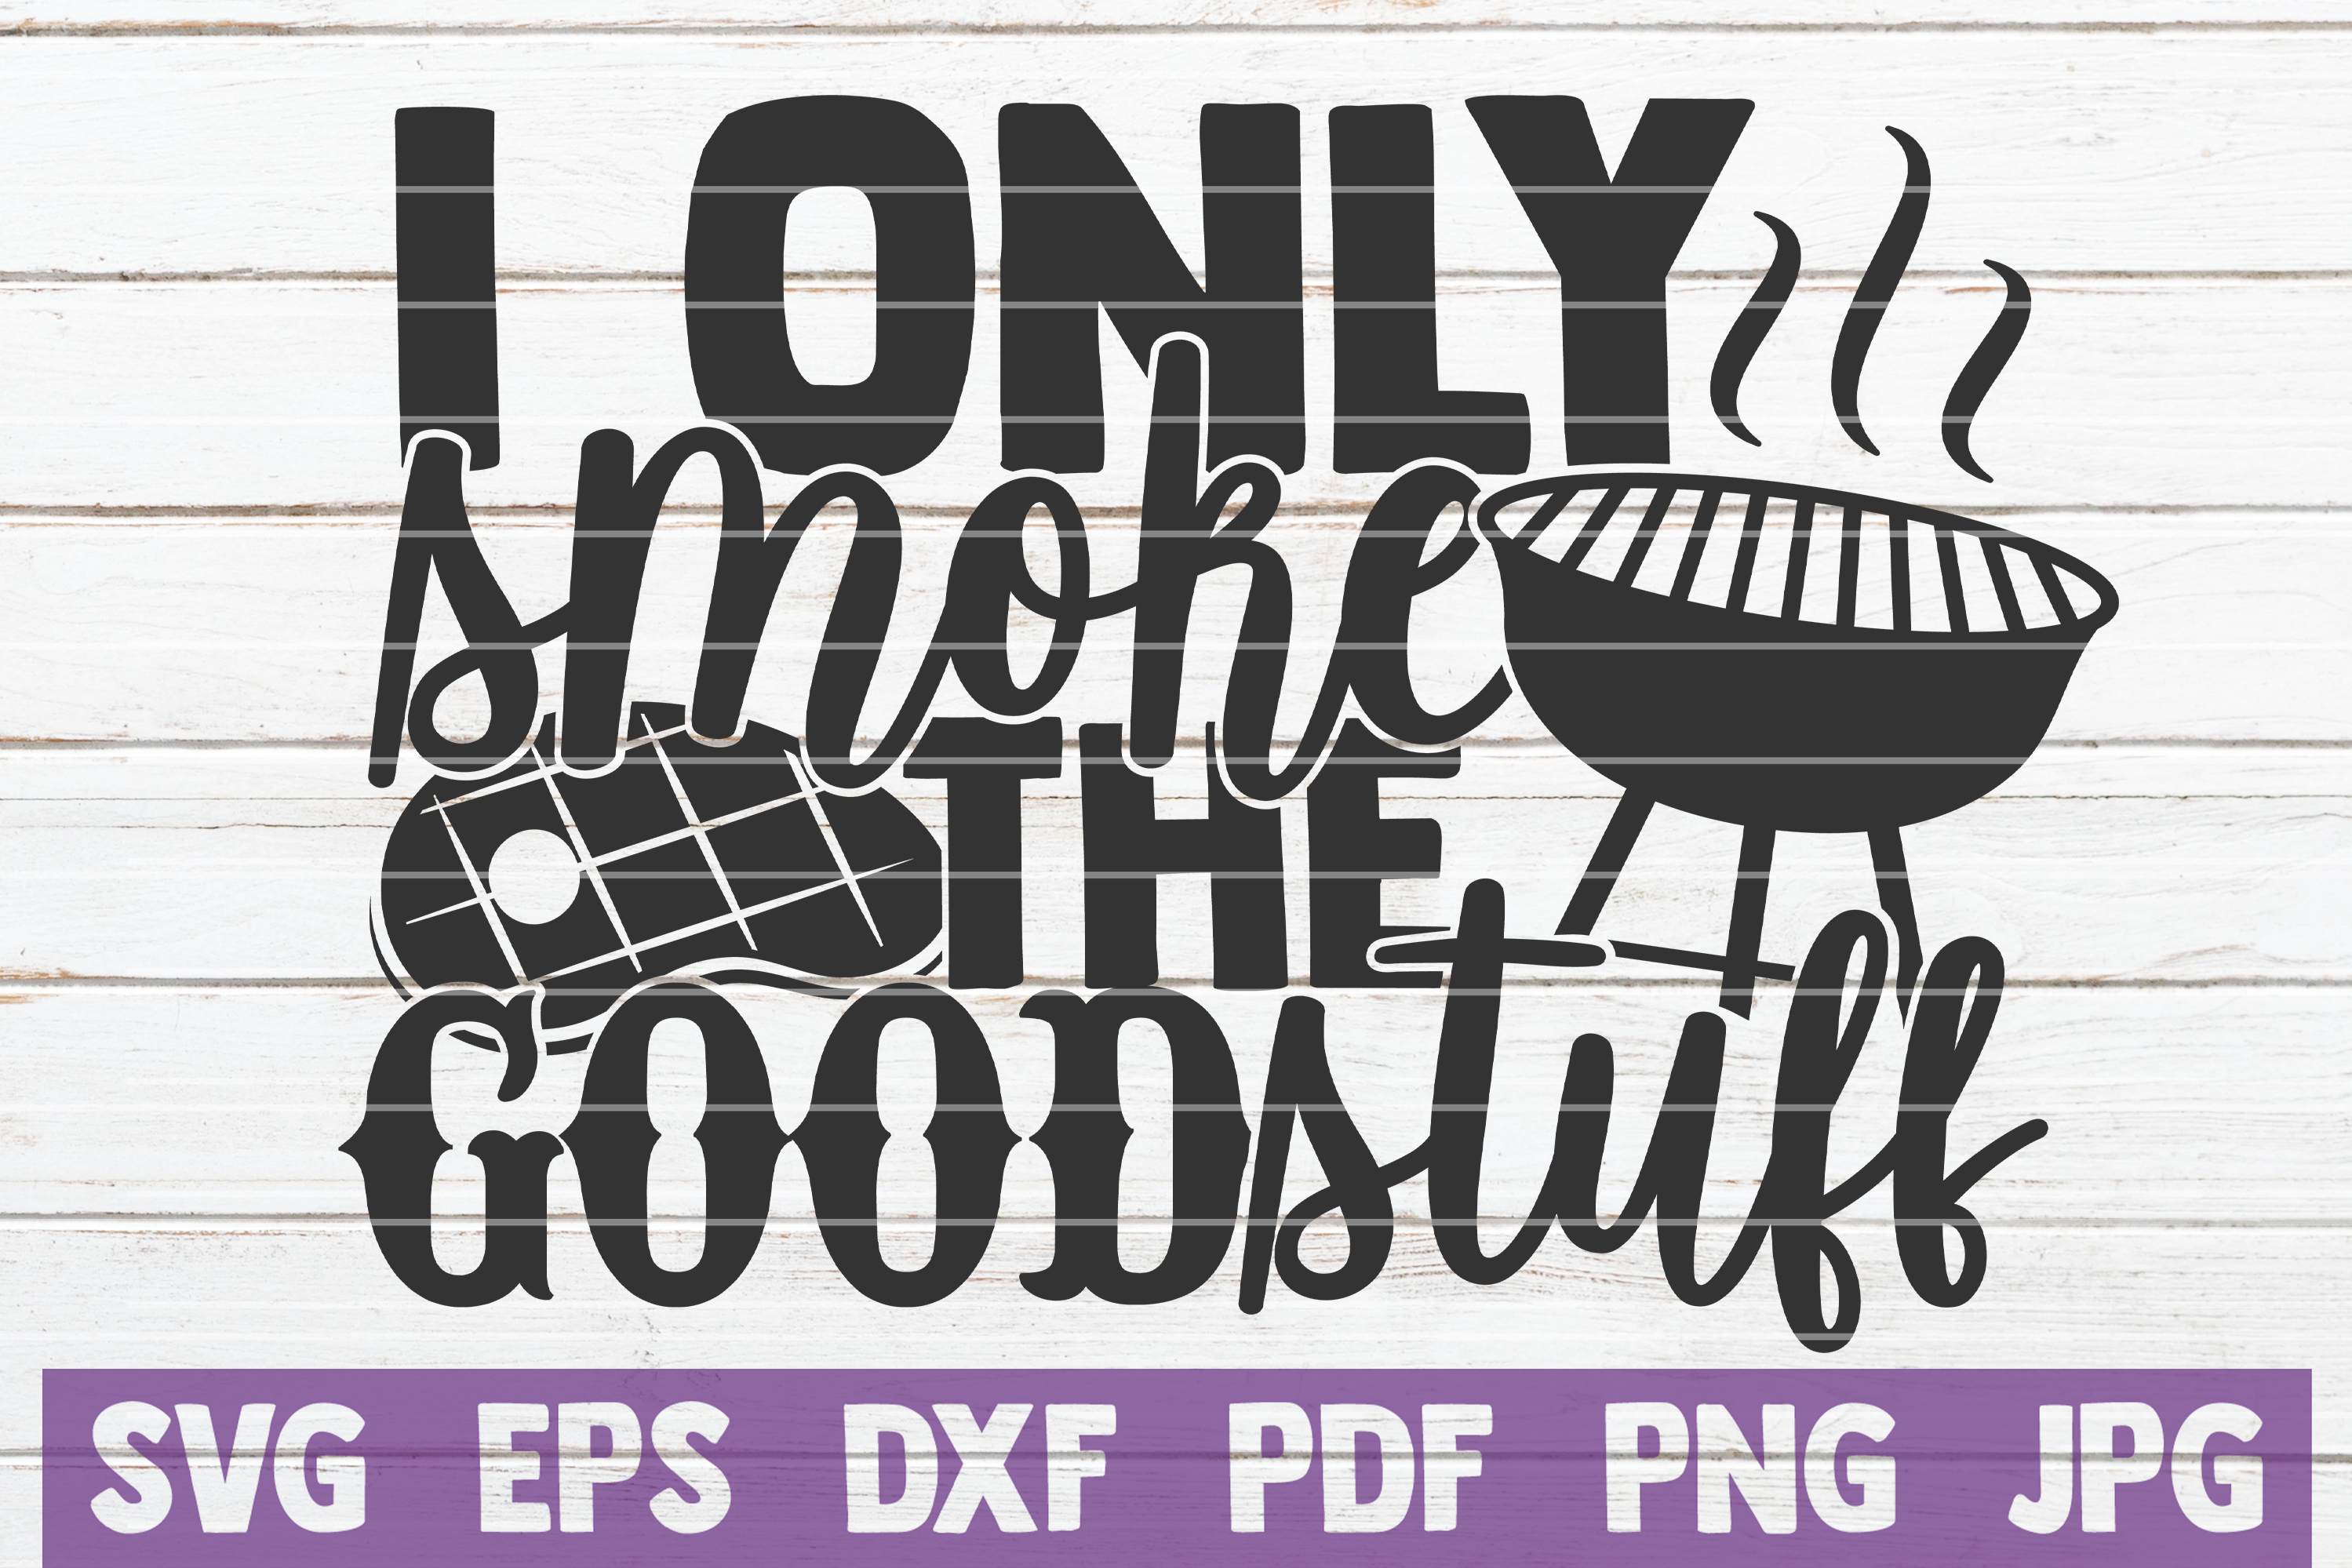 Download Free I Only Smoke The Good Stuff Graphic By Mintymarshmallows for Cricut Explore, Silhouette and other cutting machines.